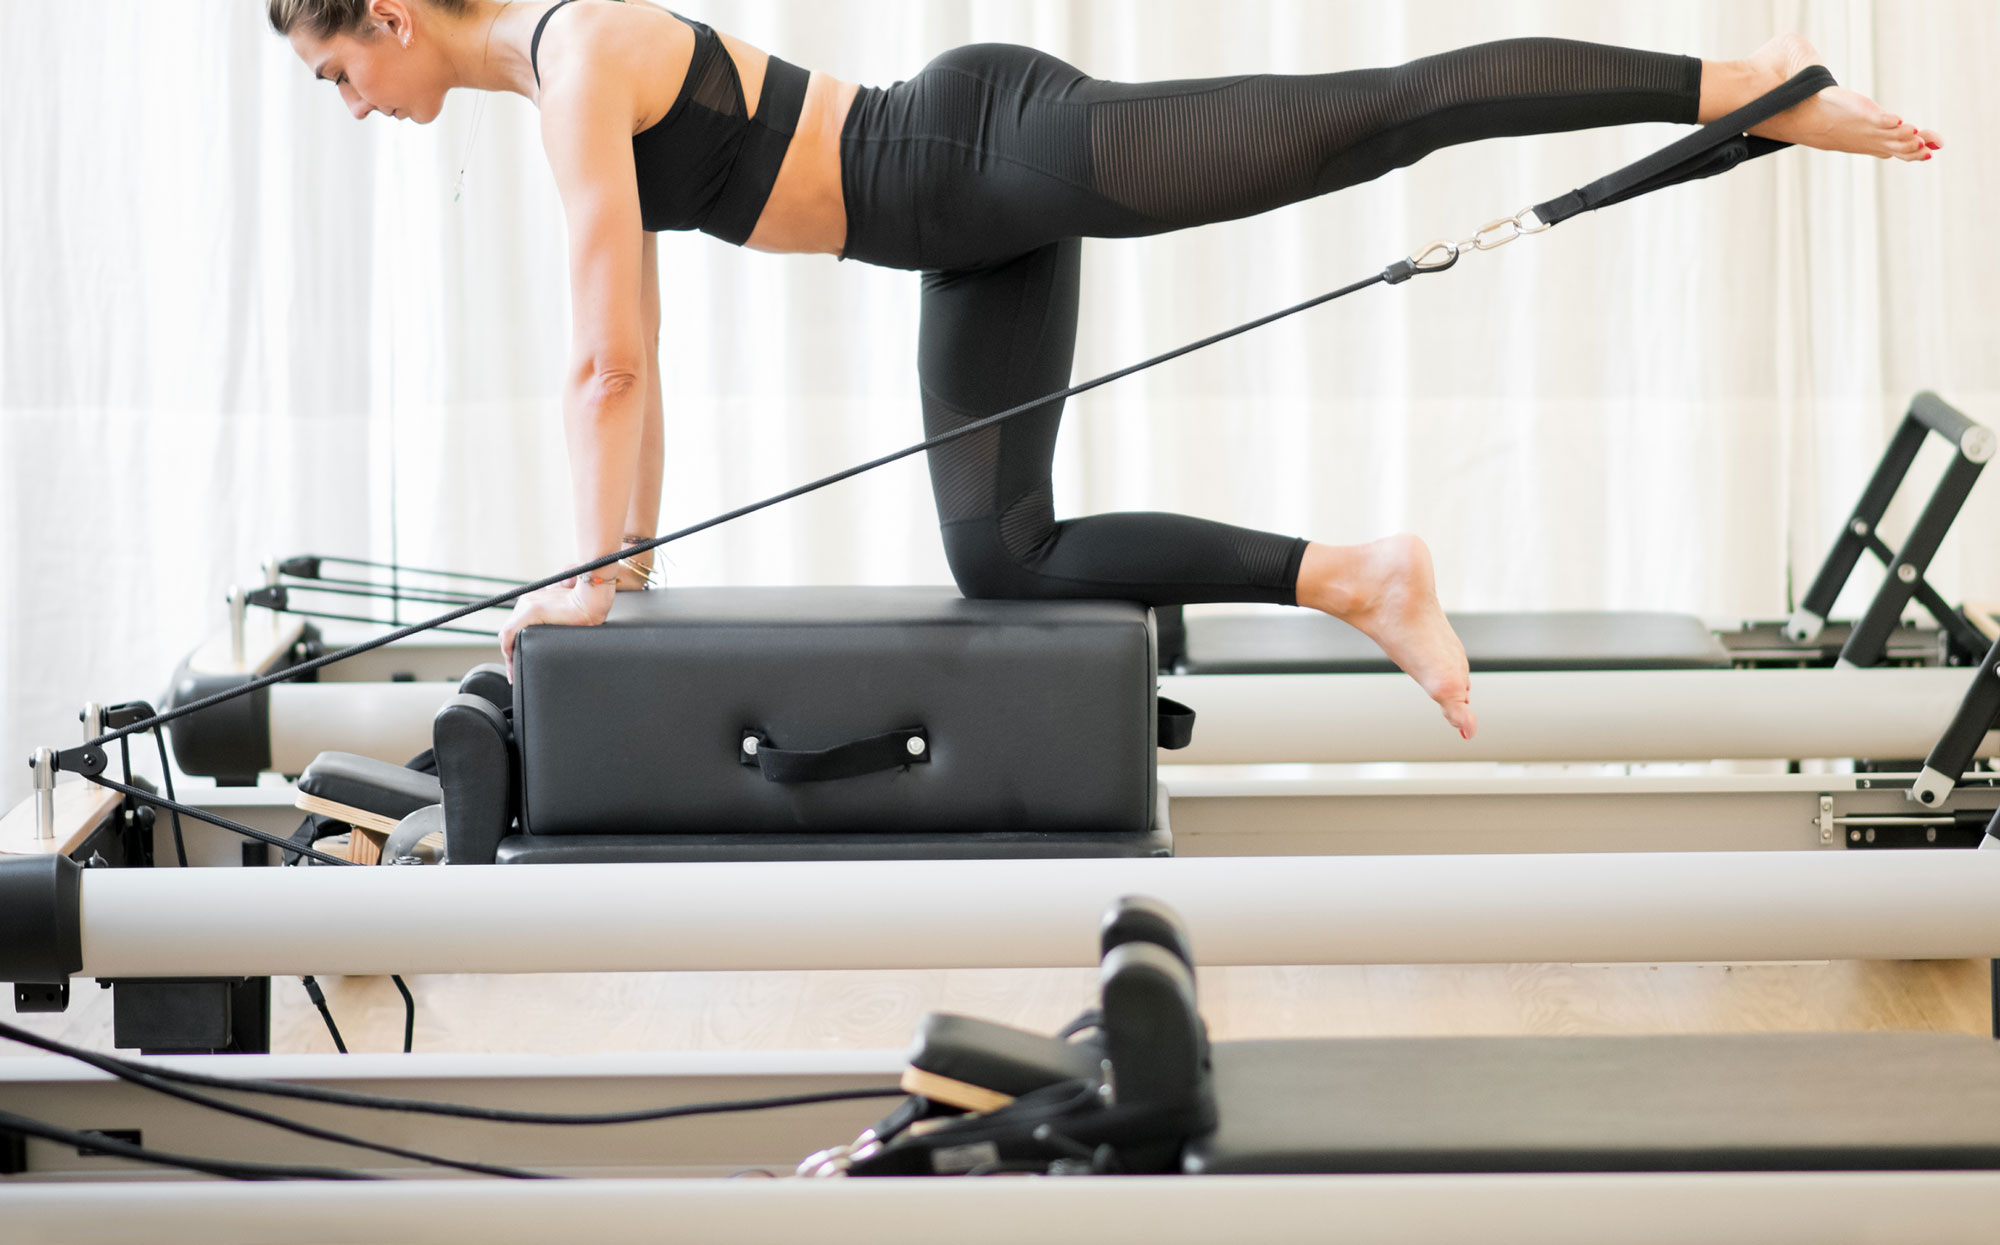 woman doing pilates on reformer head not shown